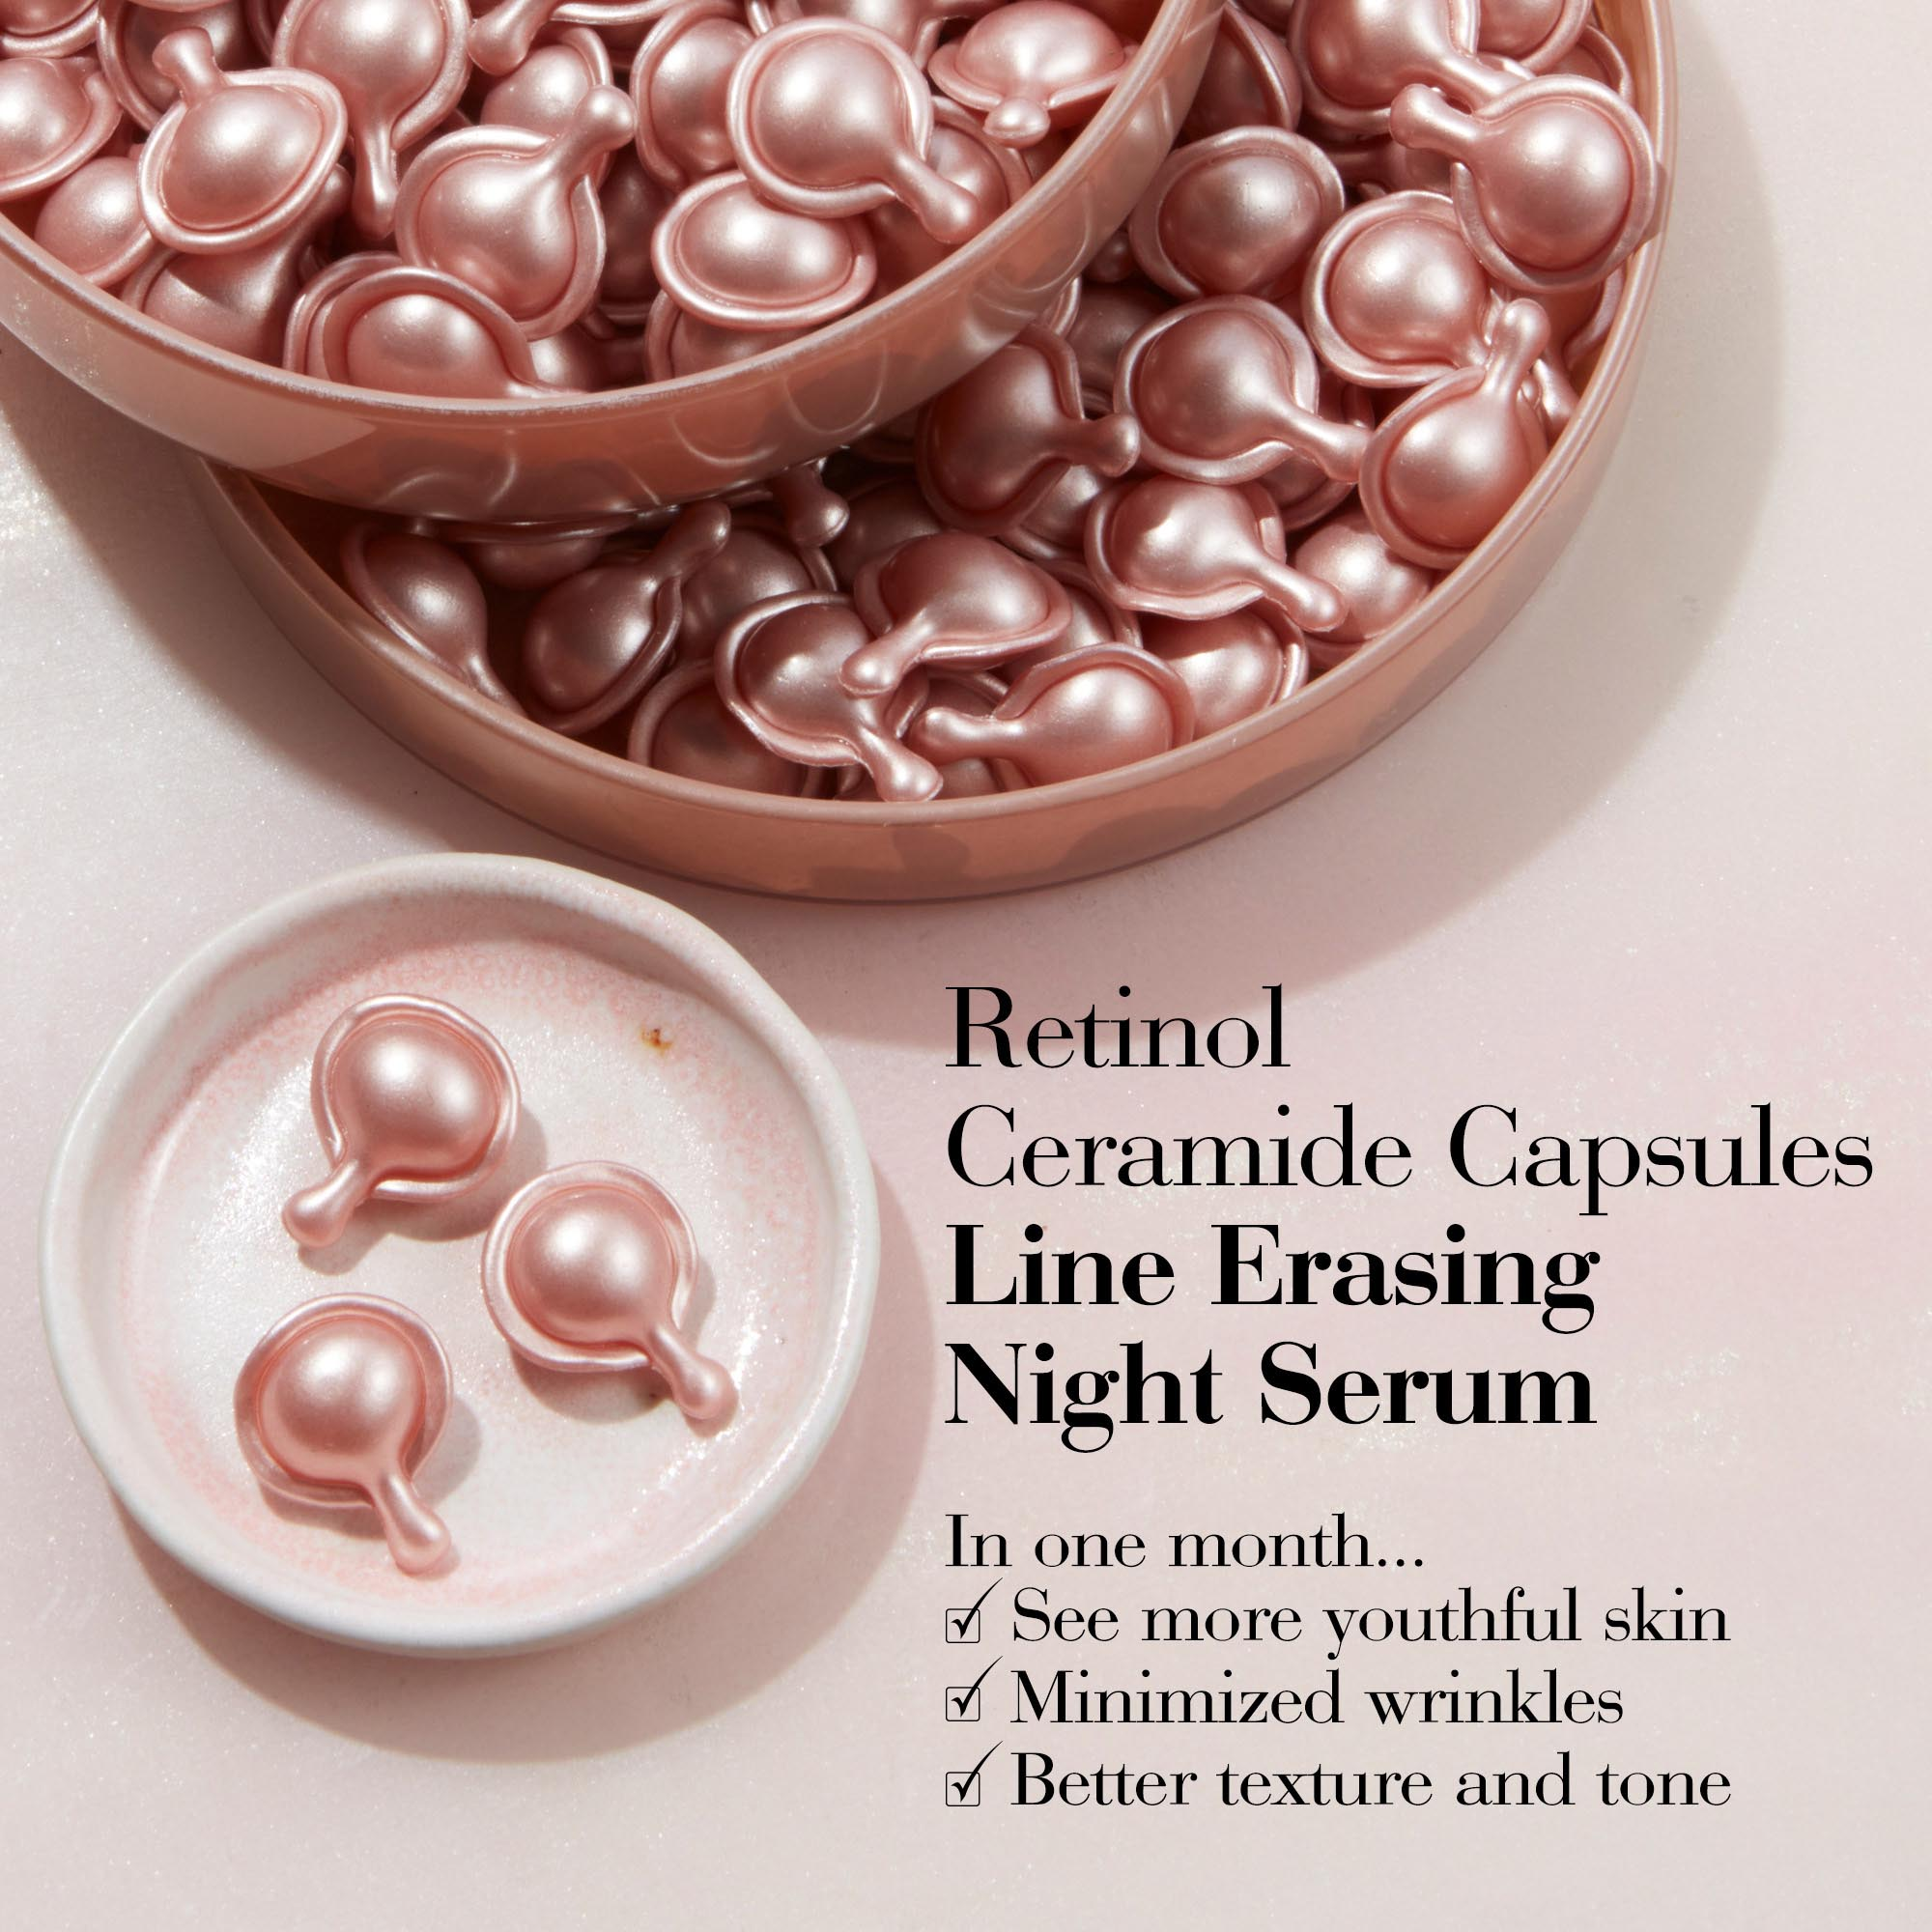 Retinol Ceramide Capsules: In one month, see more youthful skin, minimized wrinkles, and better texture and tone